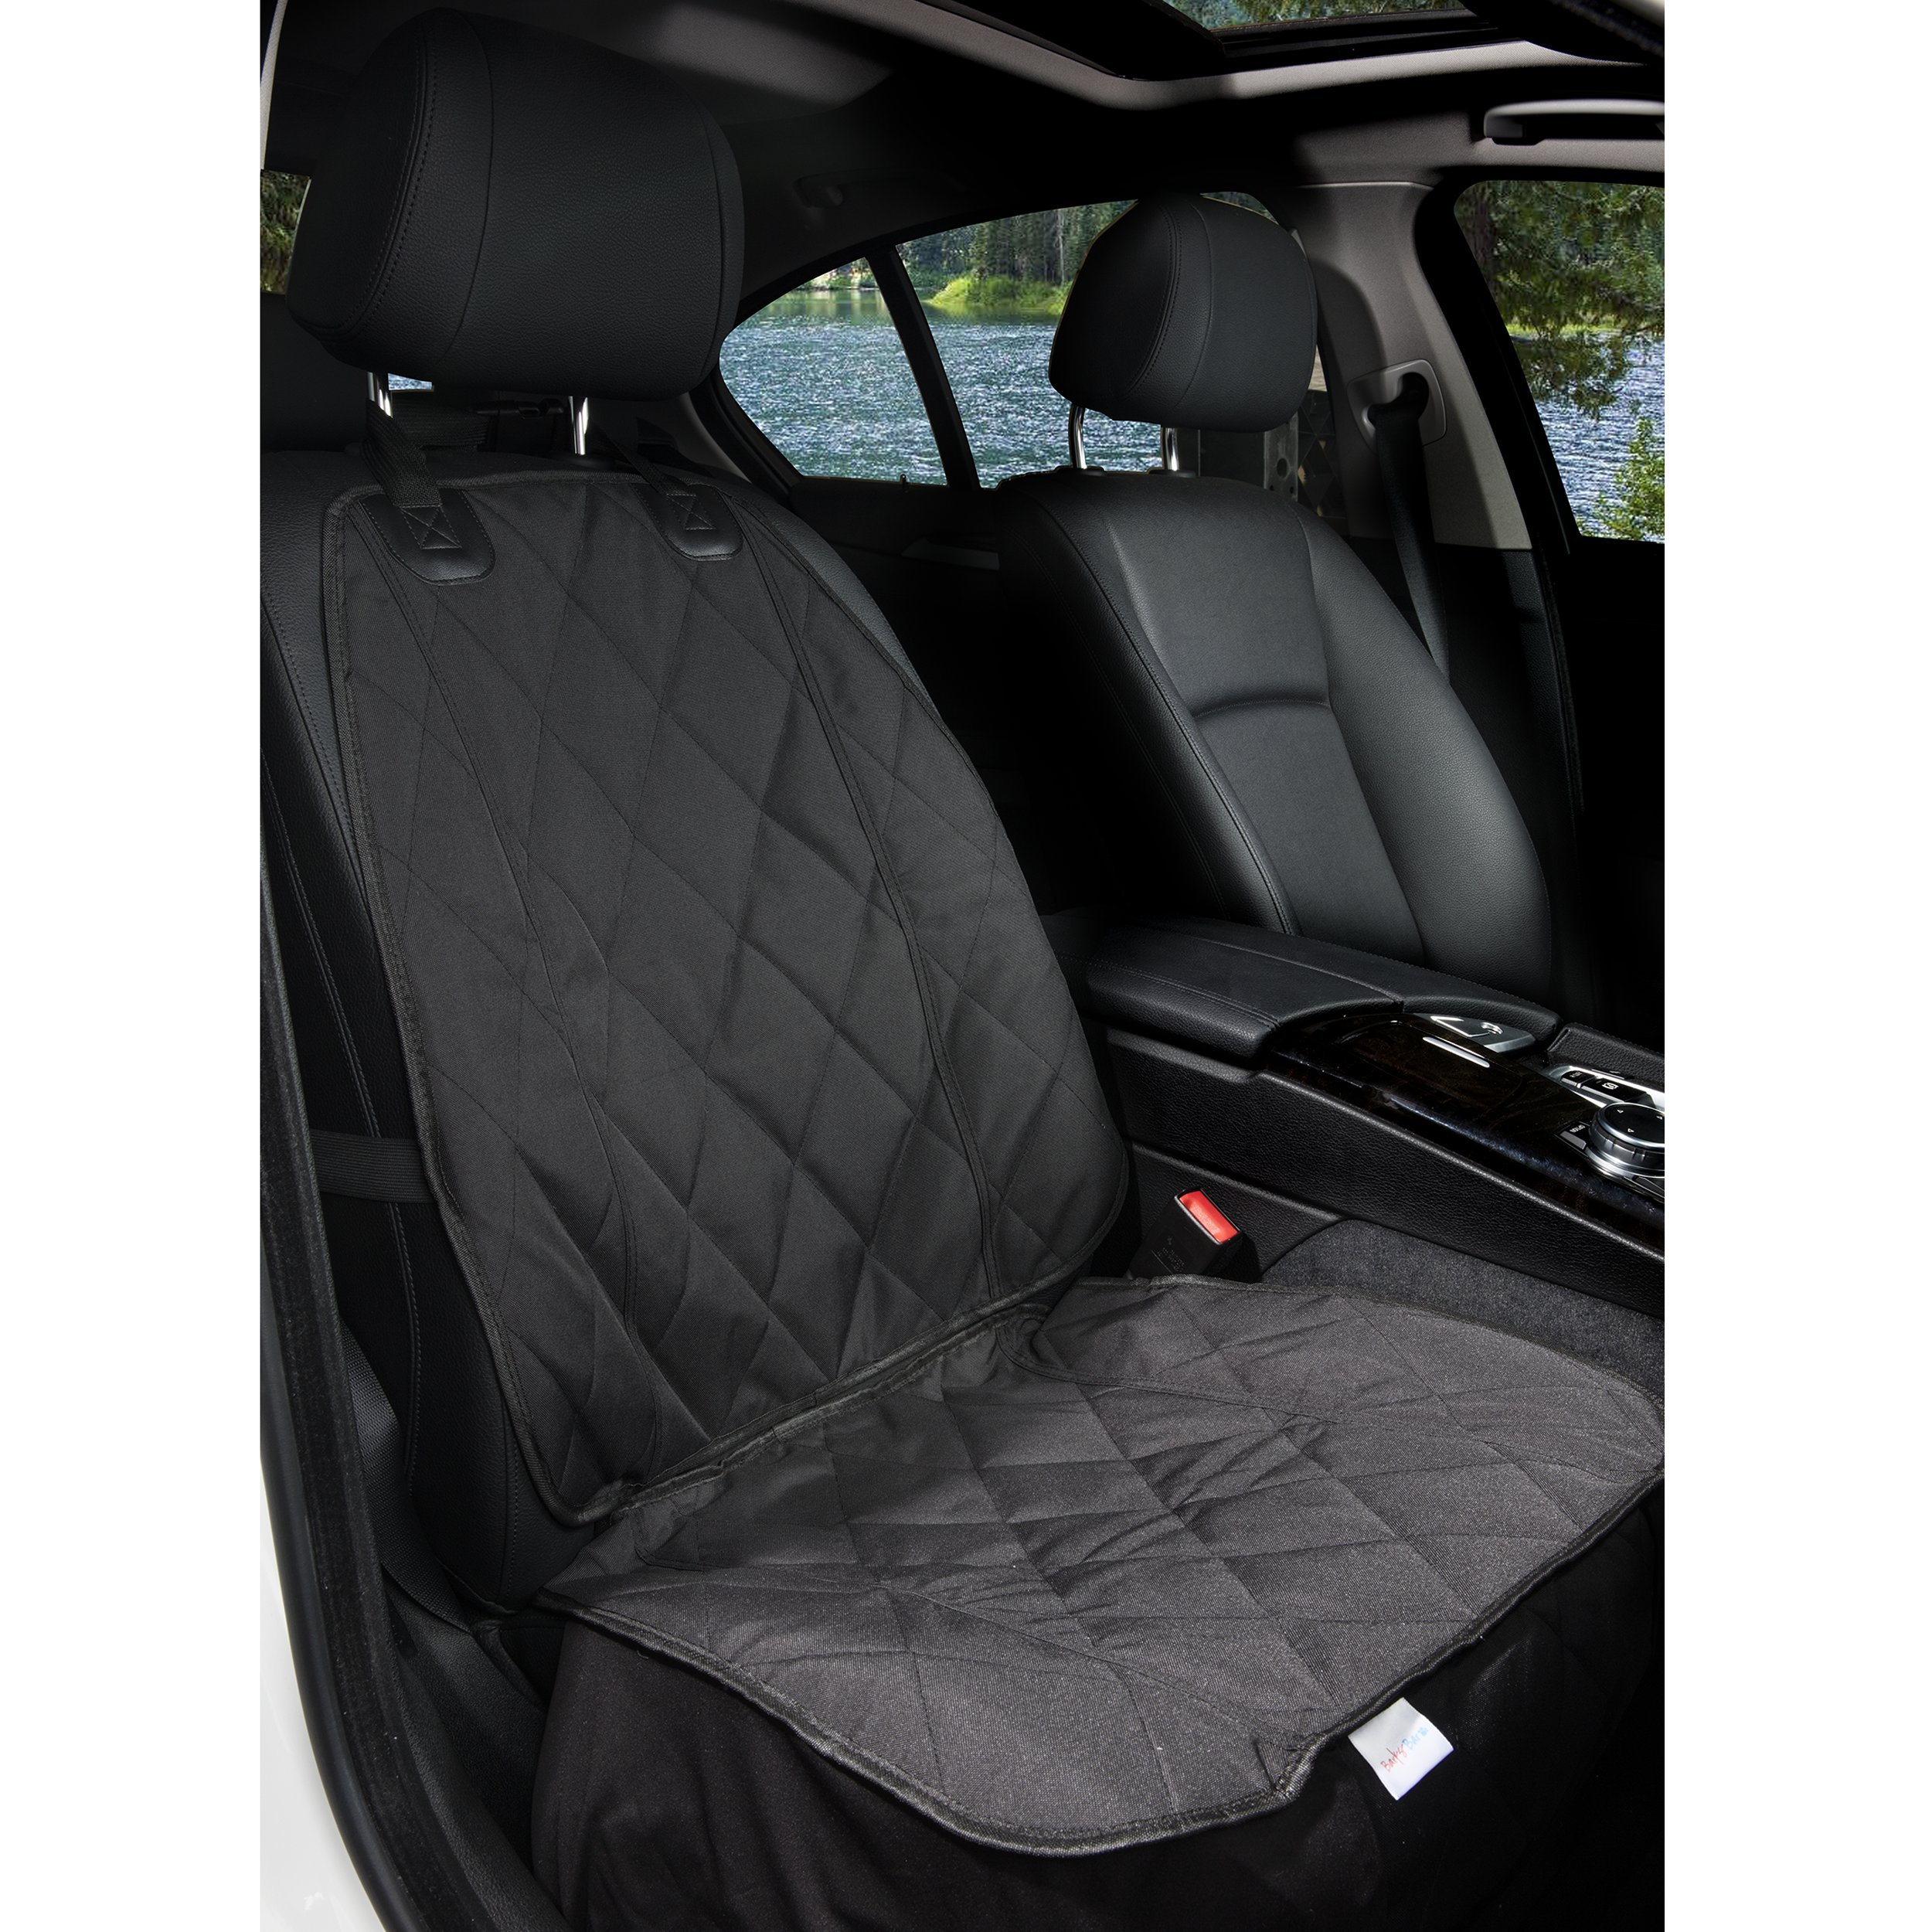 BarksBar Pet Front Seat Cover for Cars - Black, Waterproof & Nonslip Backing with Anchors, Quilted, Padded, Durable Pet Seat Covers for Cars, Trucks & SUVs by BarksBar